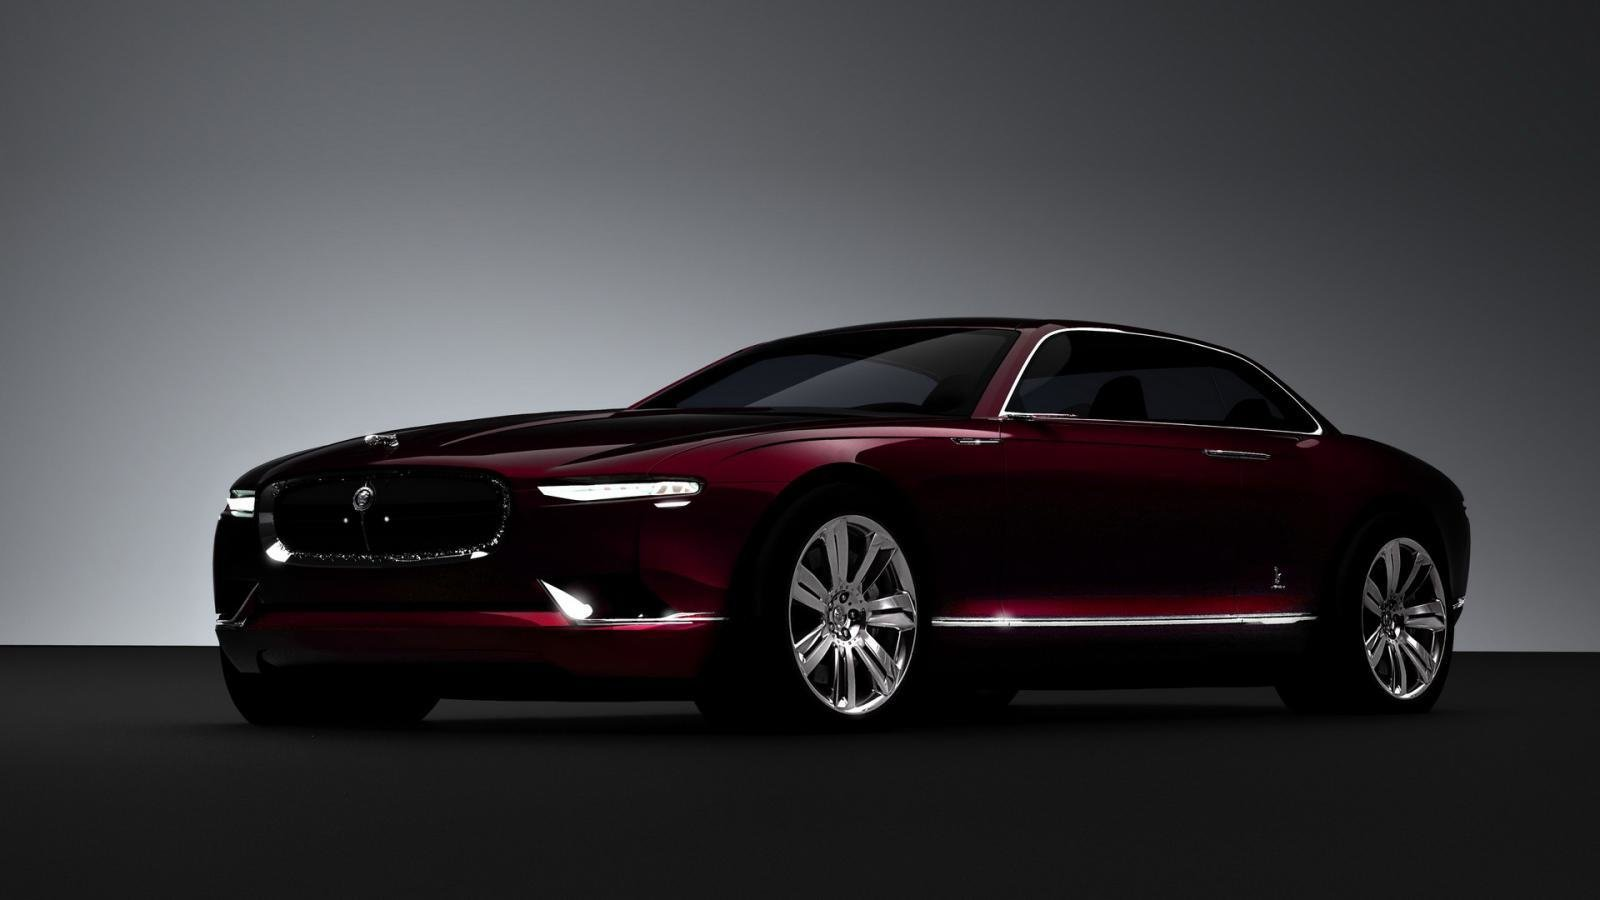 Latest Jaguar B99 Bertone Concept Car Photo Album Free Download